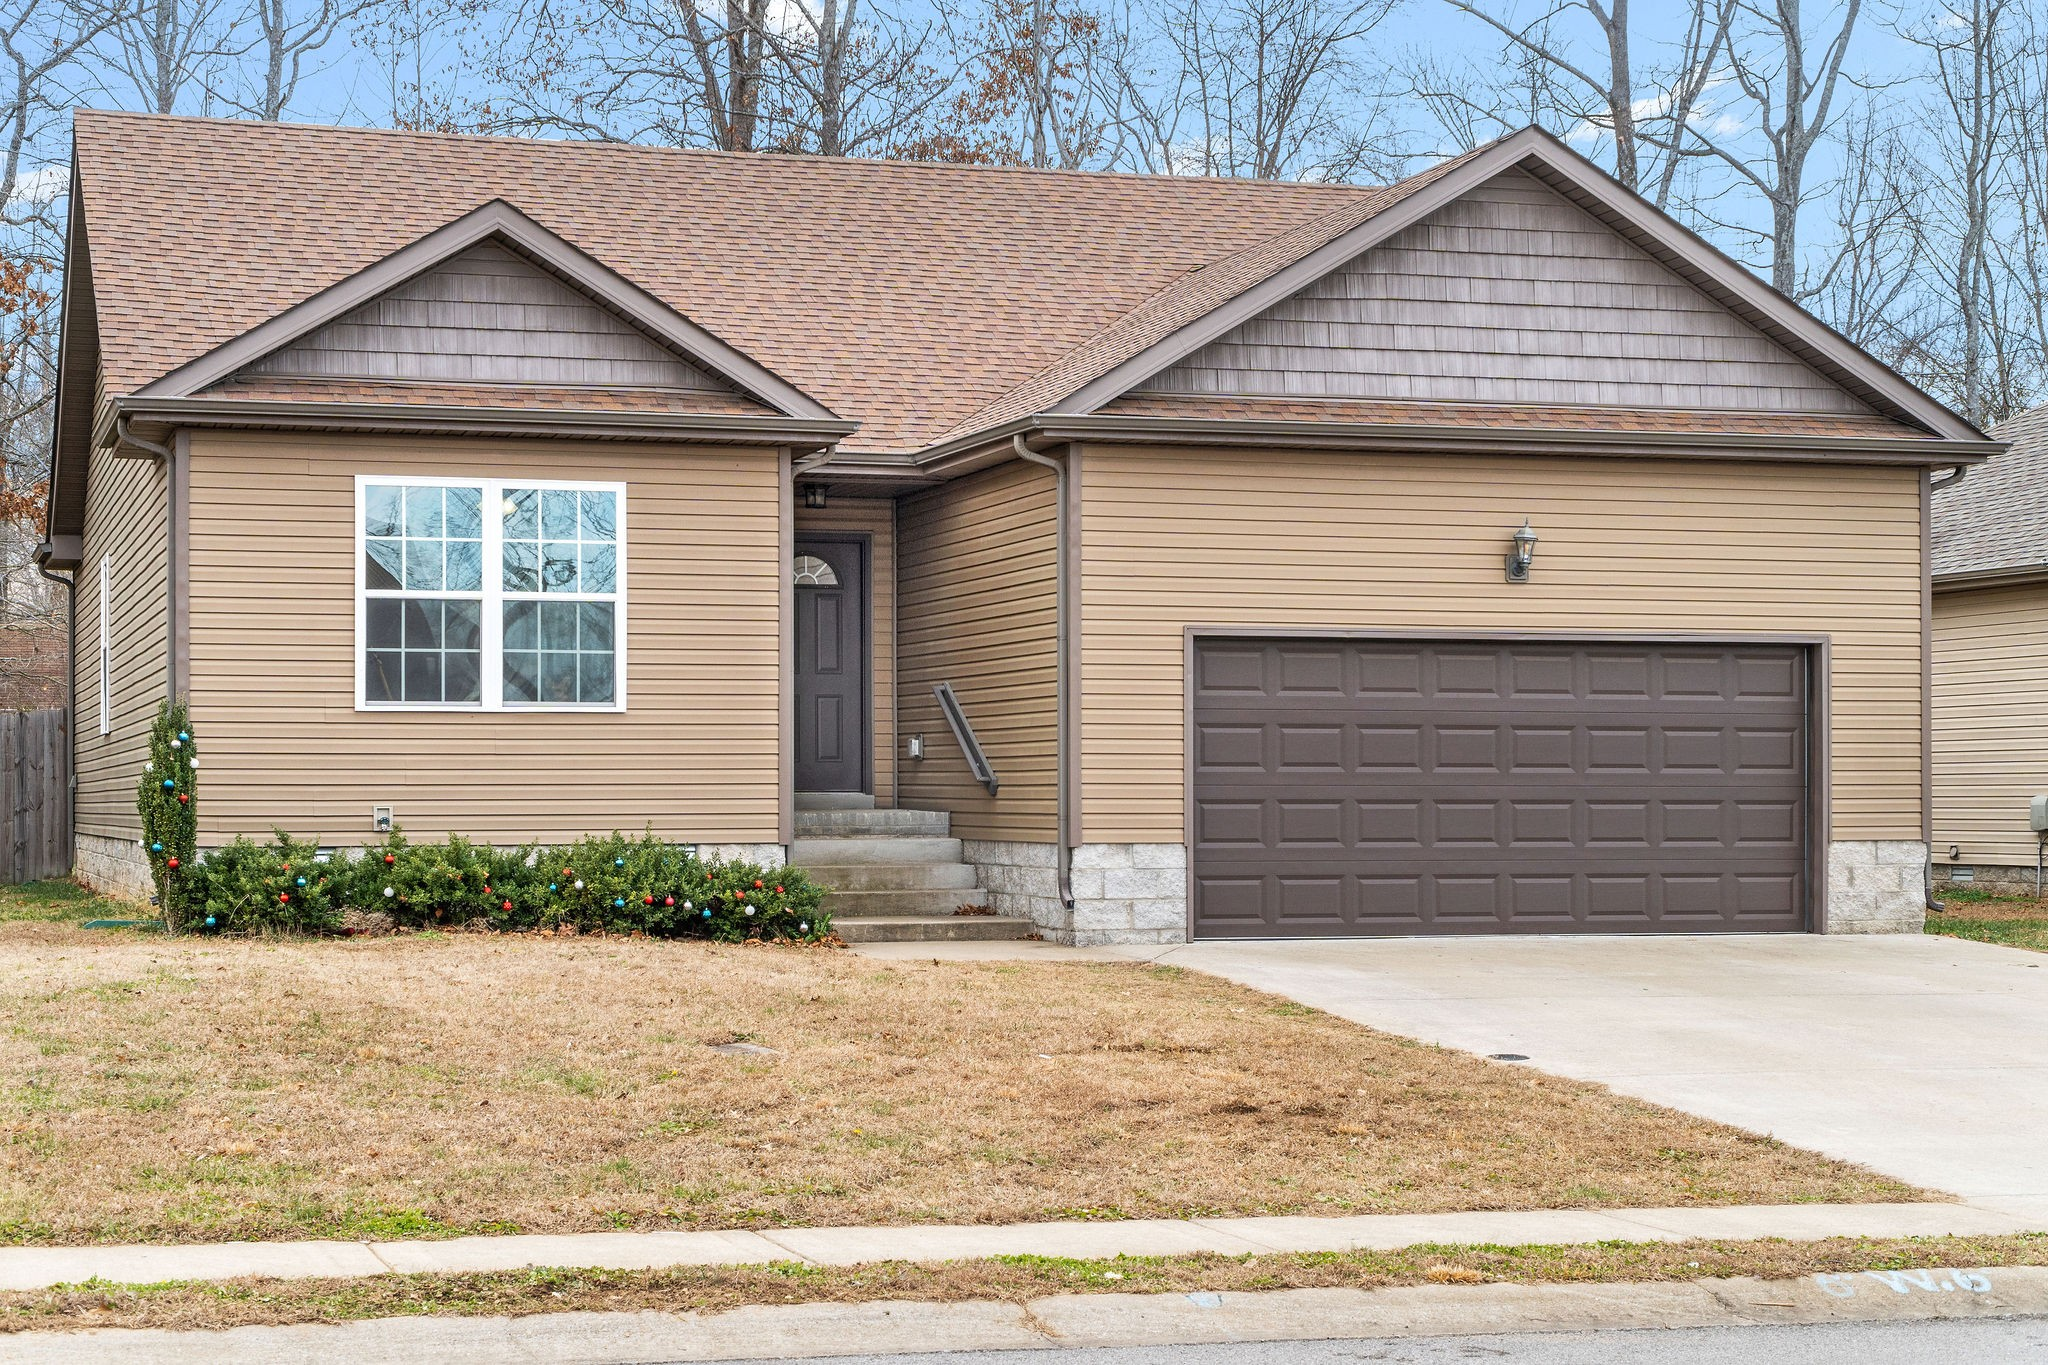 442 N Magnolia Dr Property Photo - Clarksville, TN real estate listing